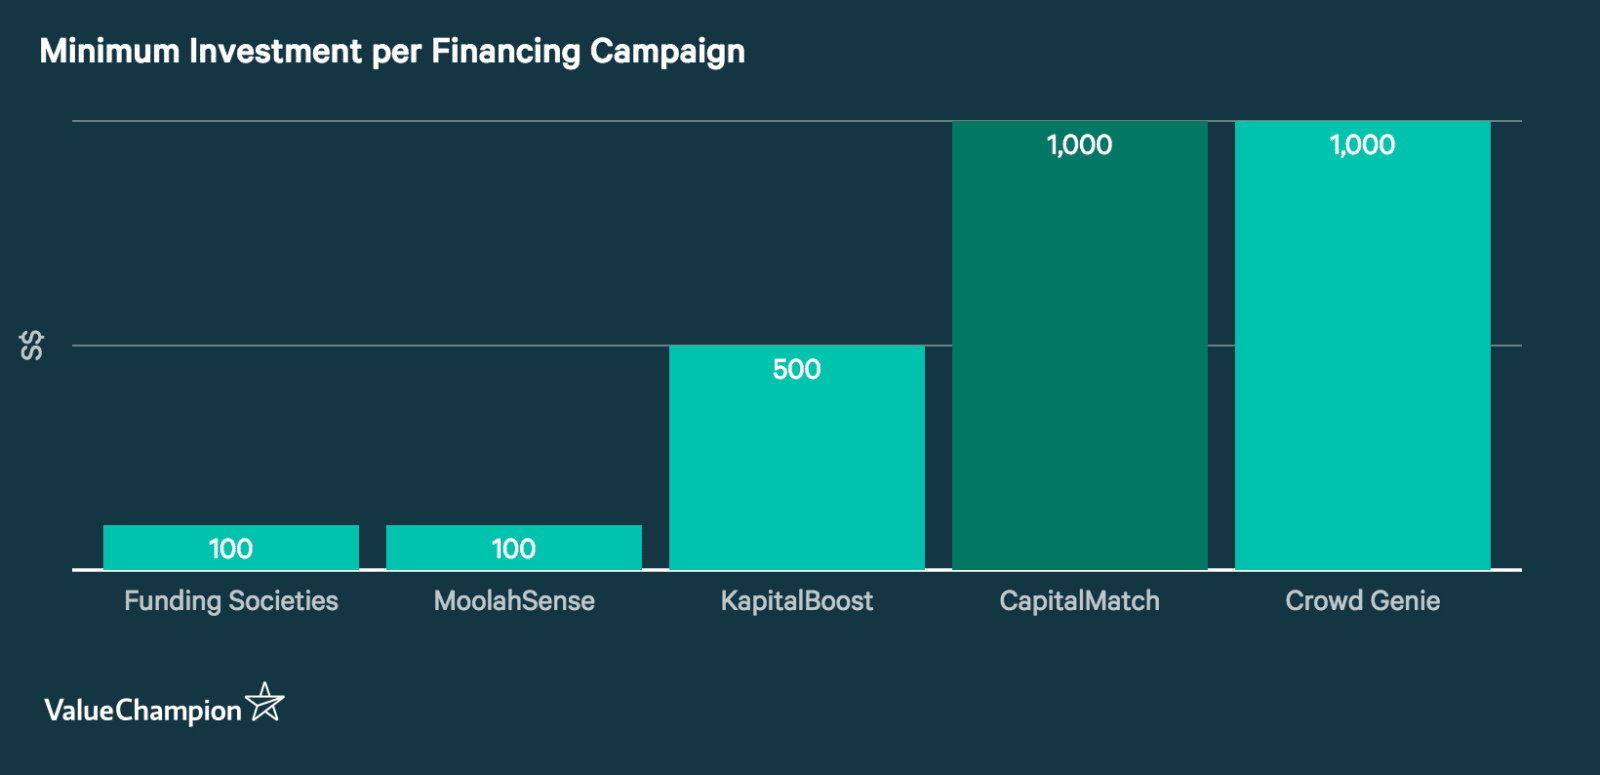 Graph showing the Minimum investment per financing campaign requirement of five major P2P platforms in Singapore. Capital Match charges S$1,000, much more than Funding Societies and MoolahSense, S$100 each, and Kapital Boost (S$500).